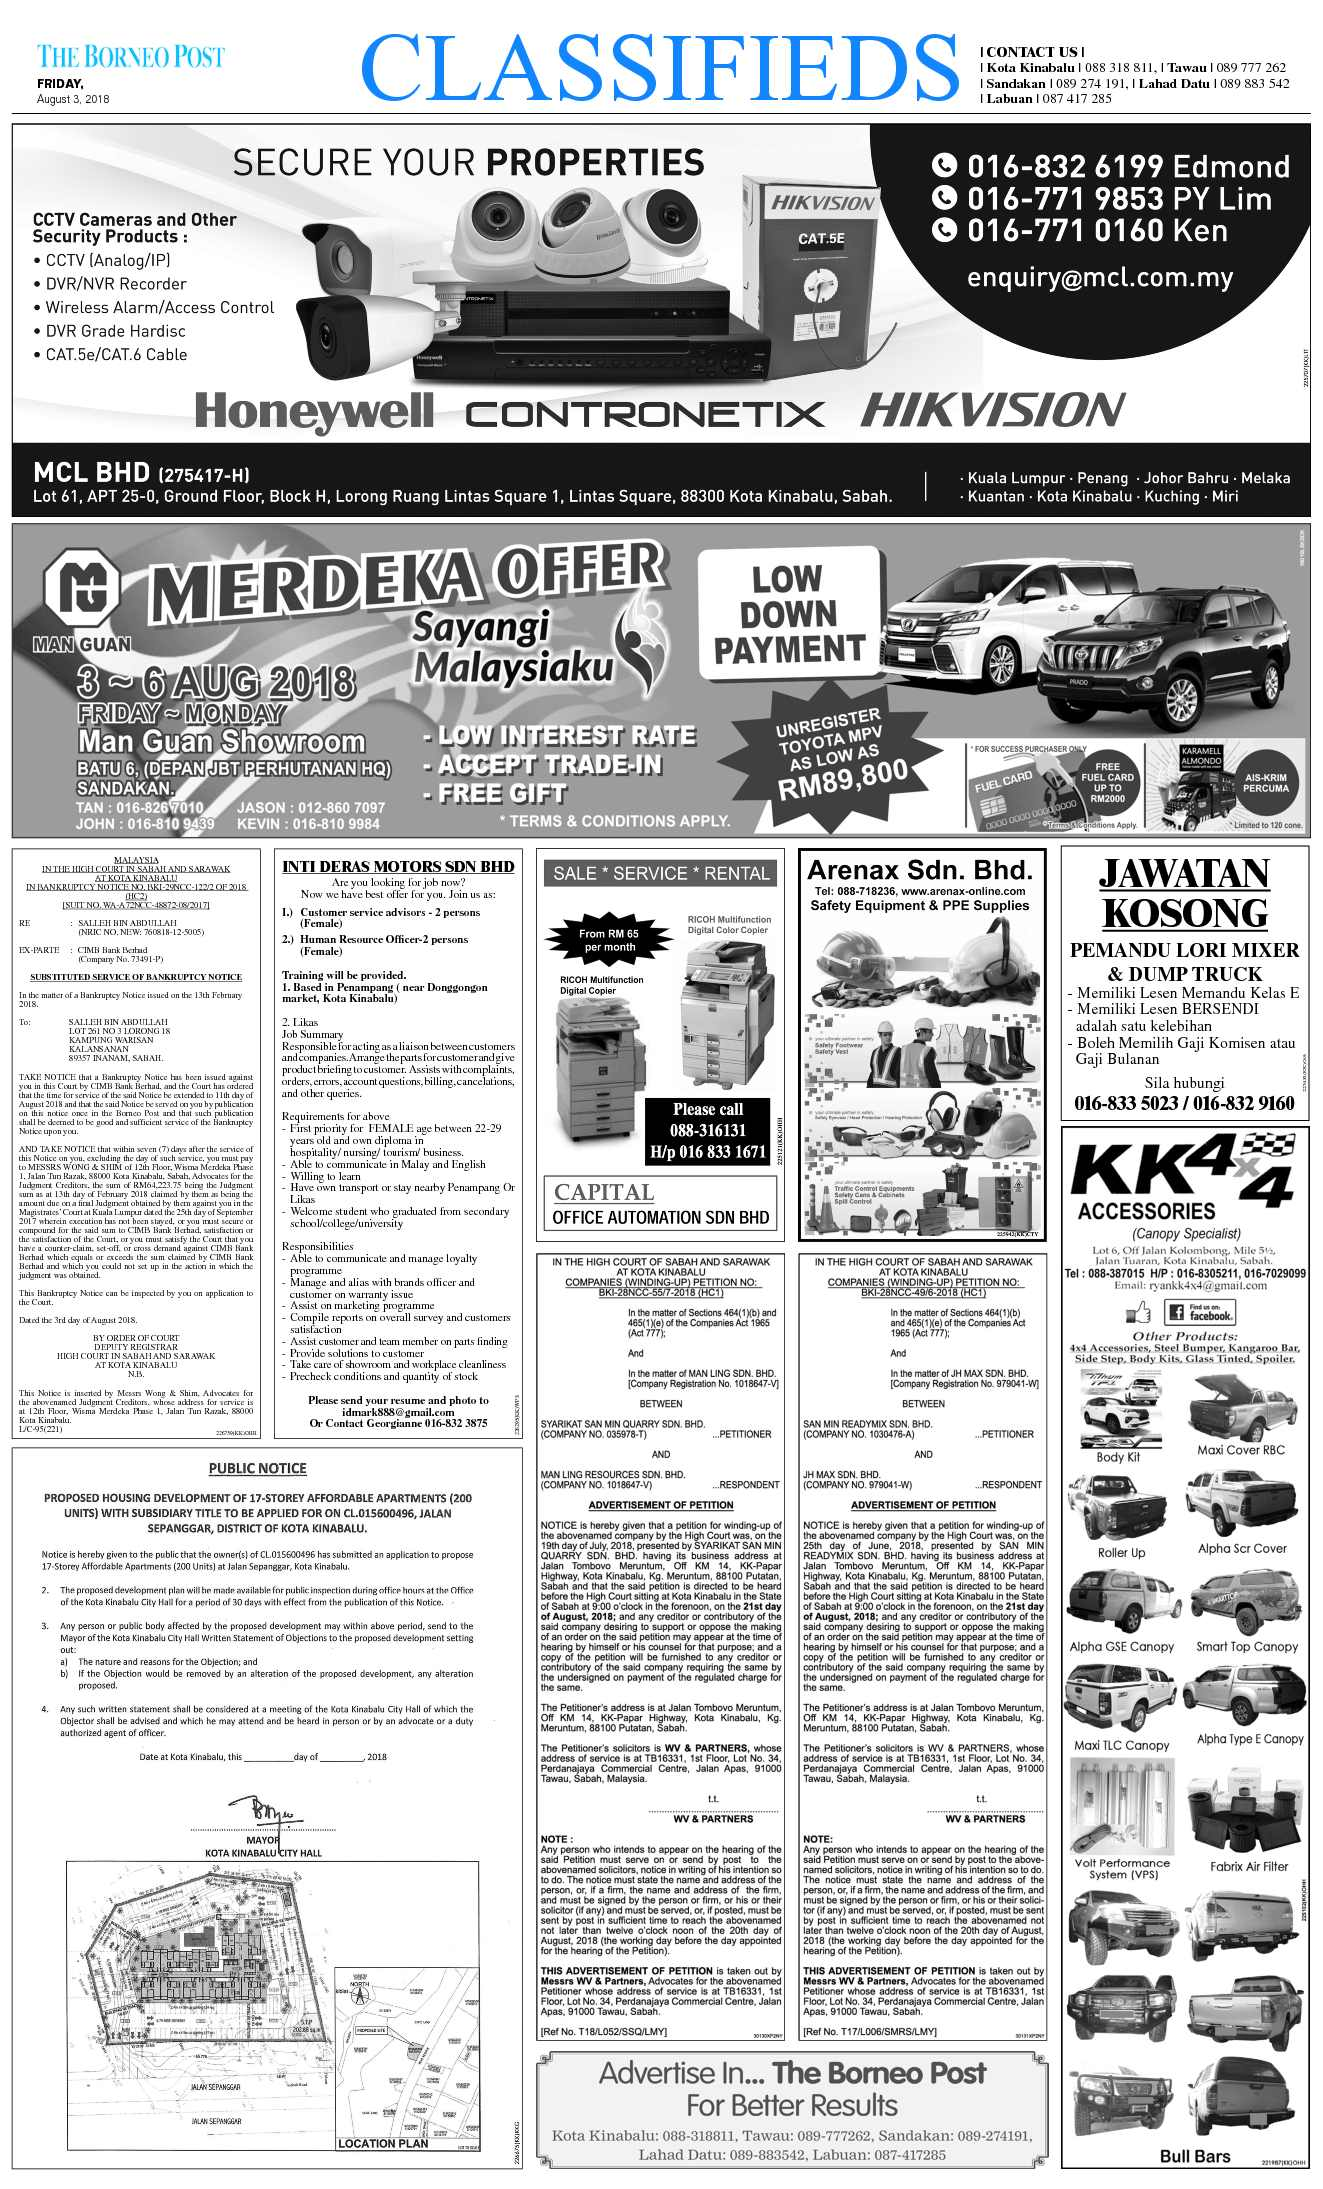 Friday - Aug 3 | The Borneo Post Classifieds